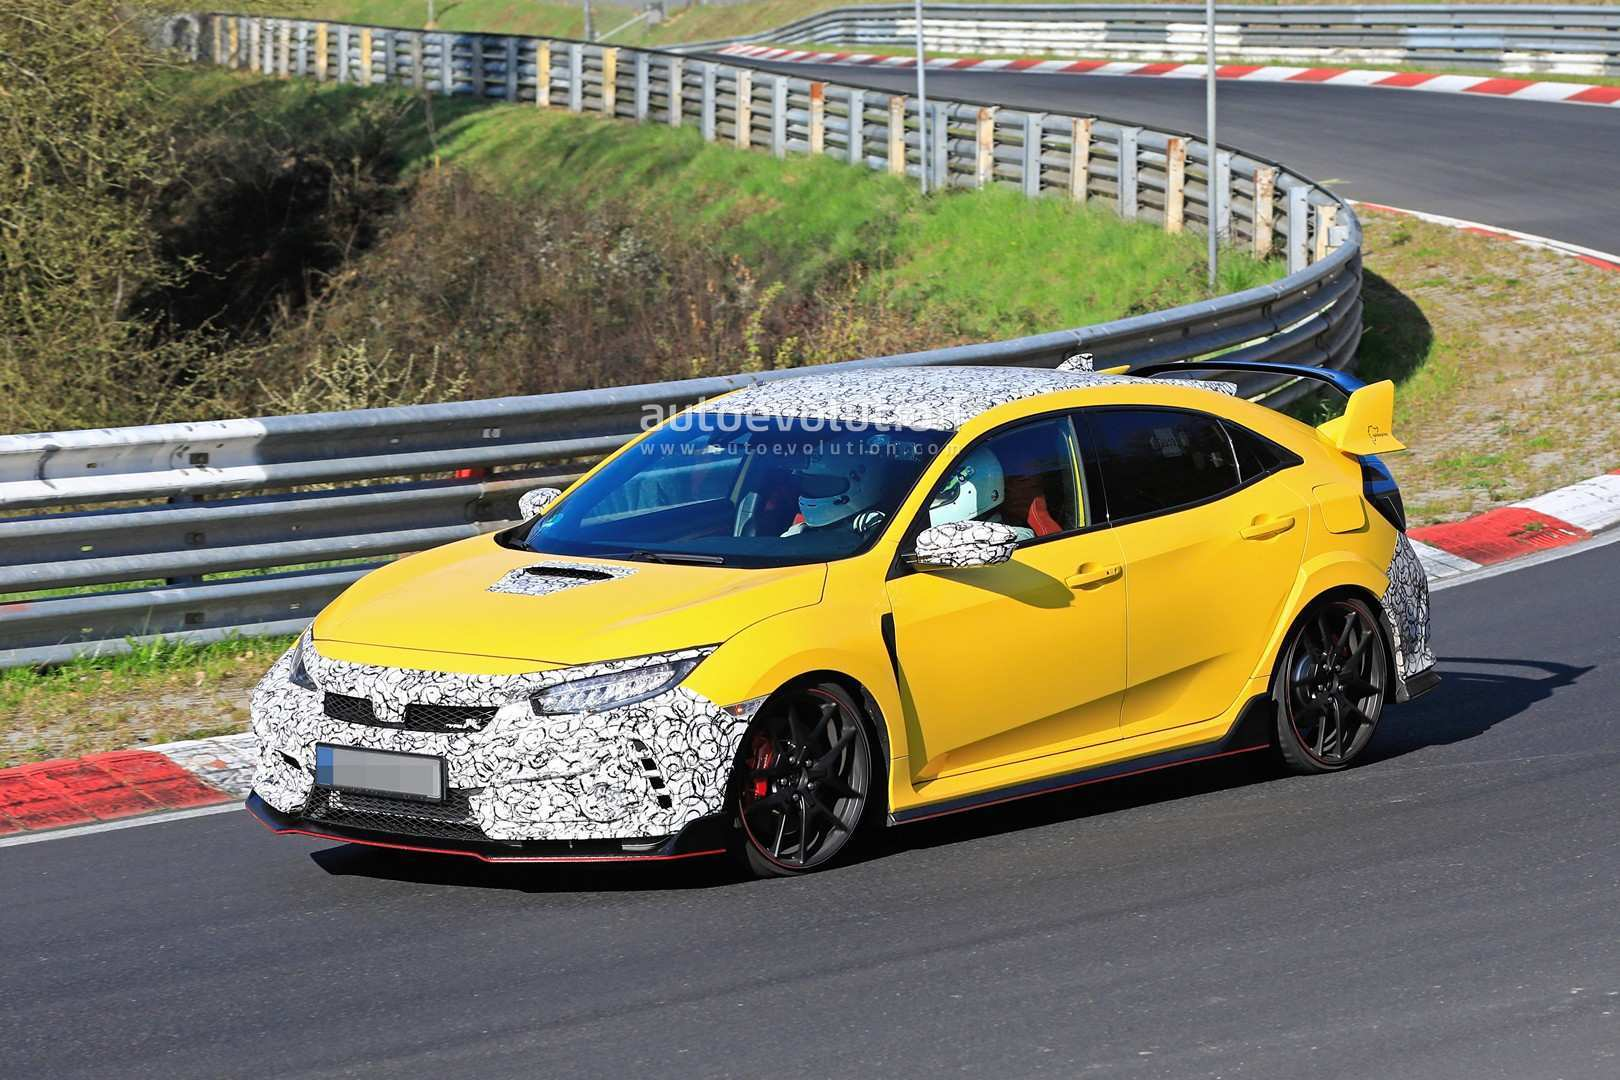 77 The Best 2020 Honda Civic Si Type R Review